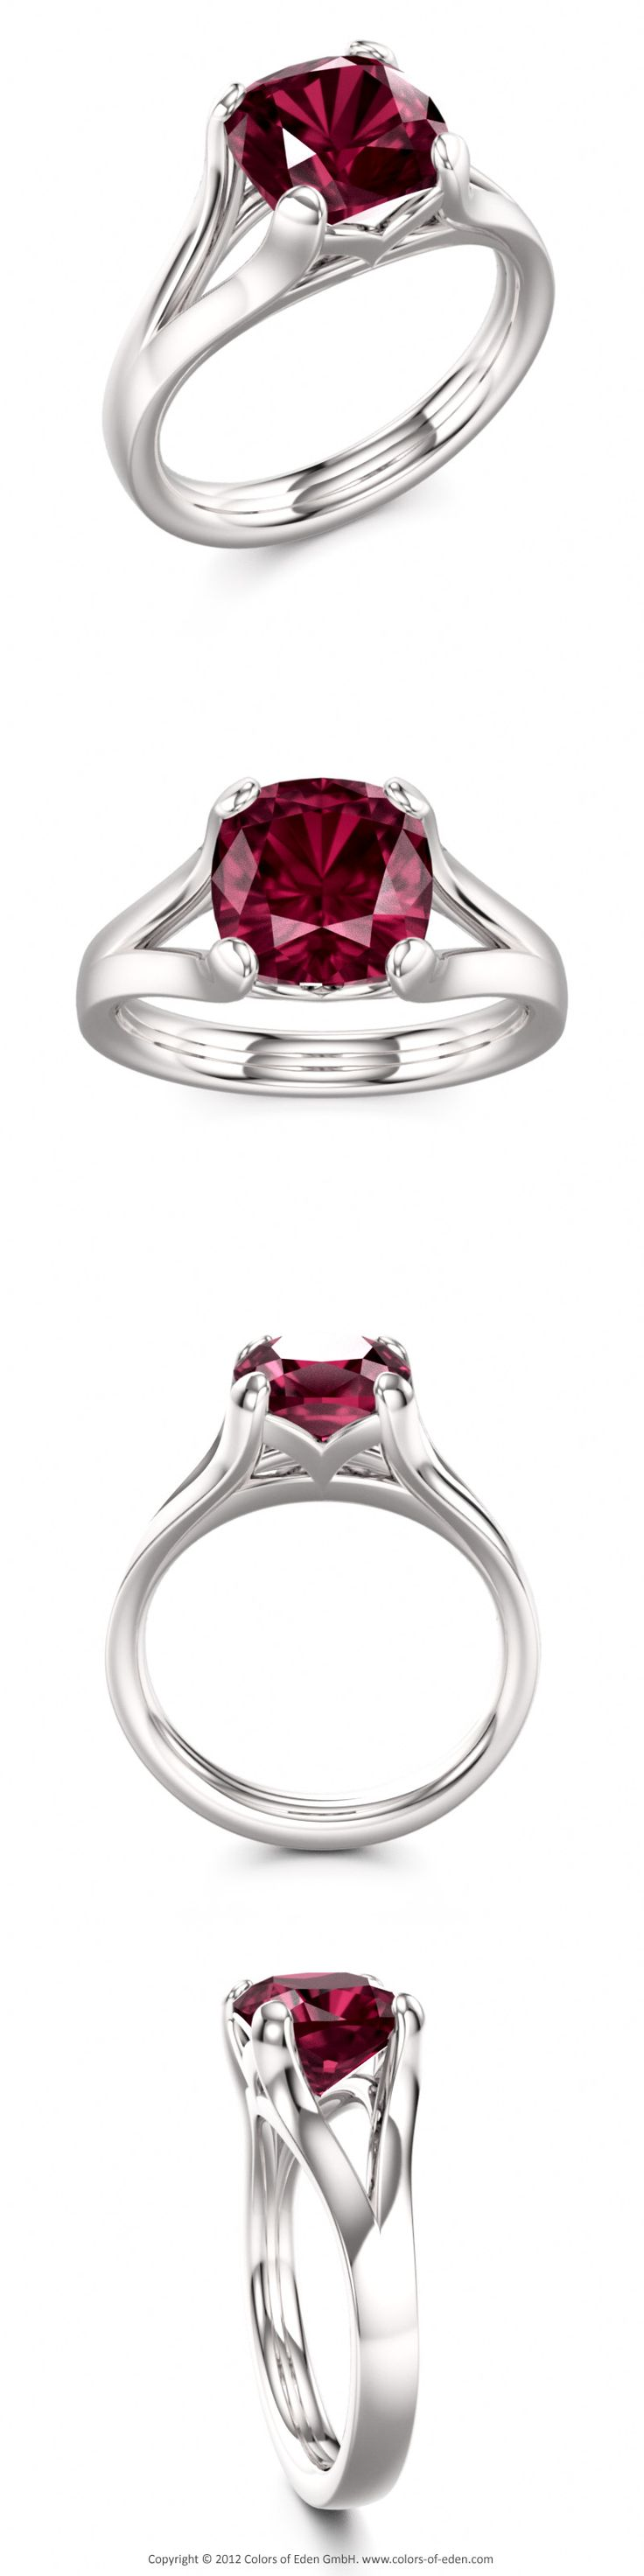 rose of m products pomellato gold stackable a ama ring rings copy non iolite garnet engagement with mama rhodolite